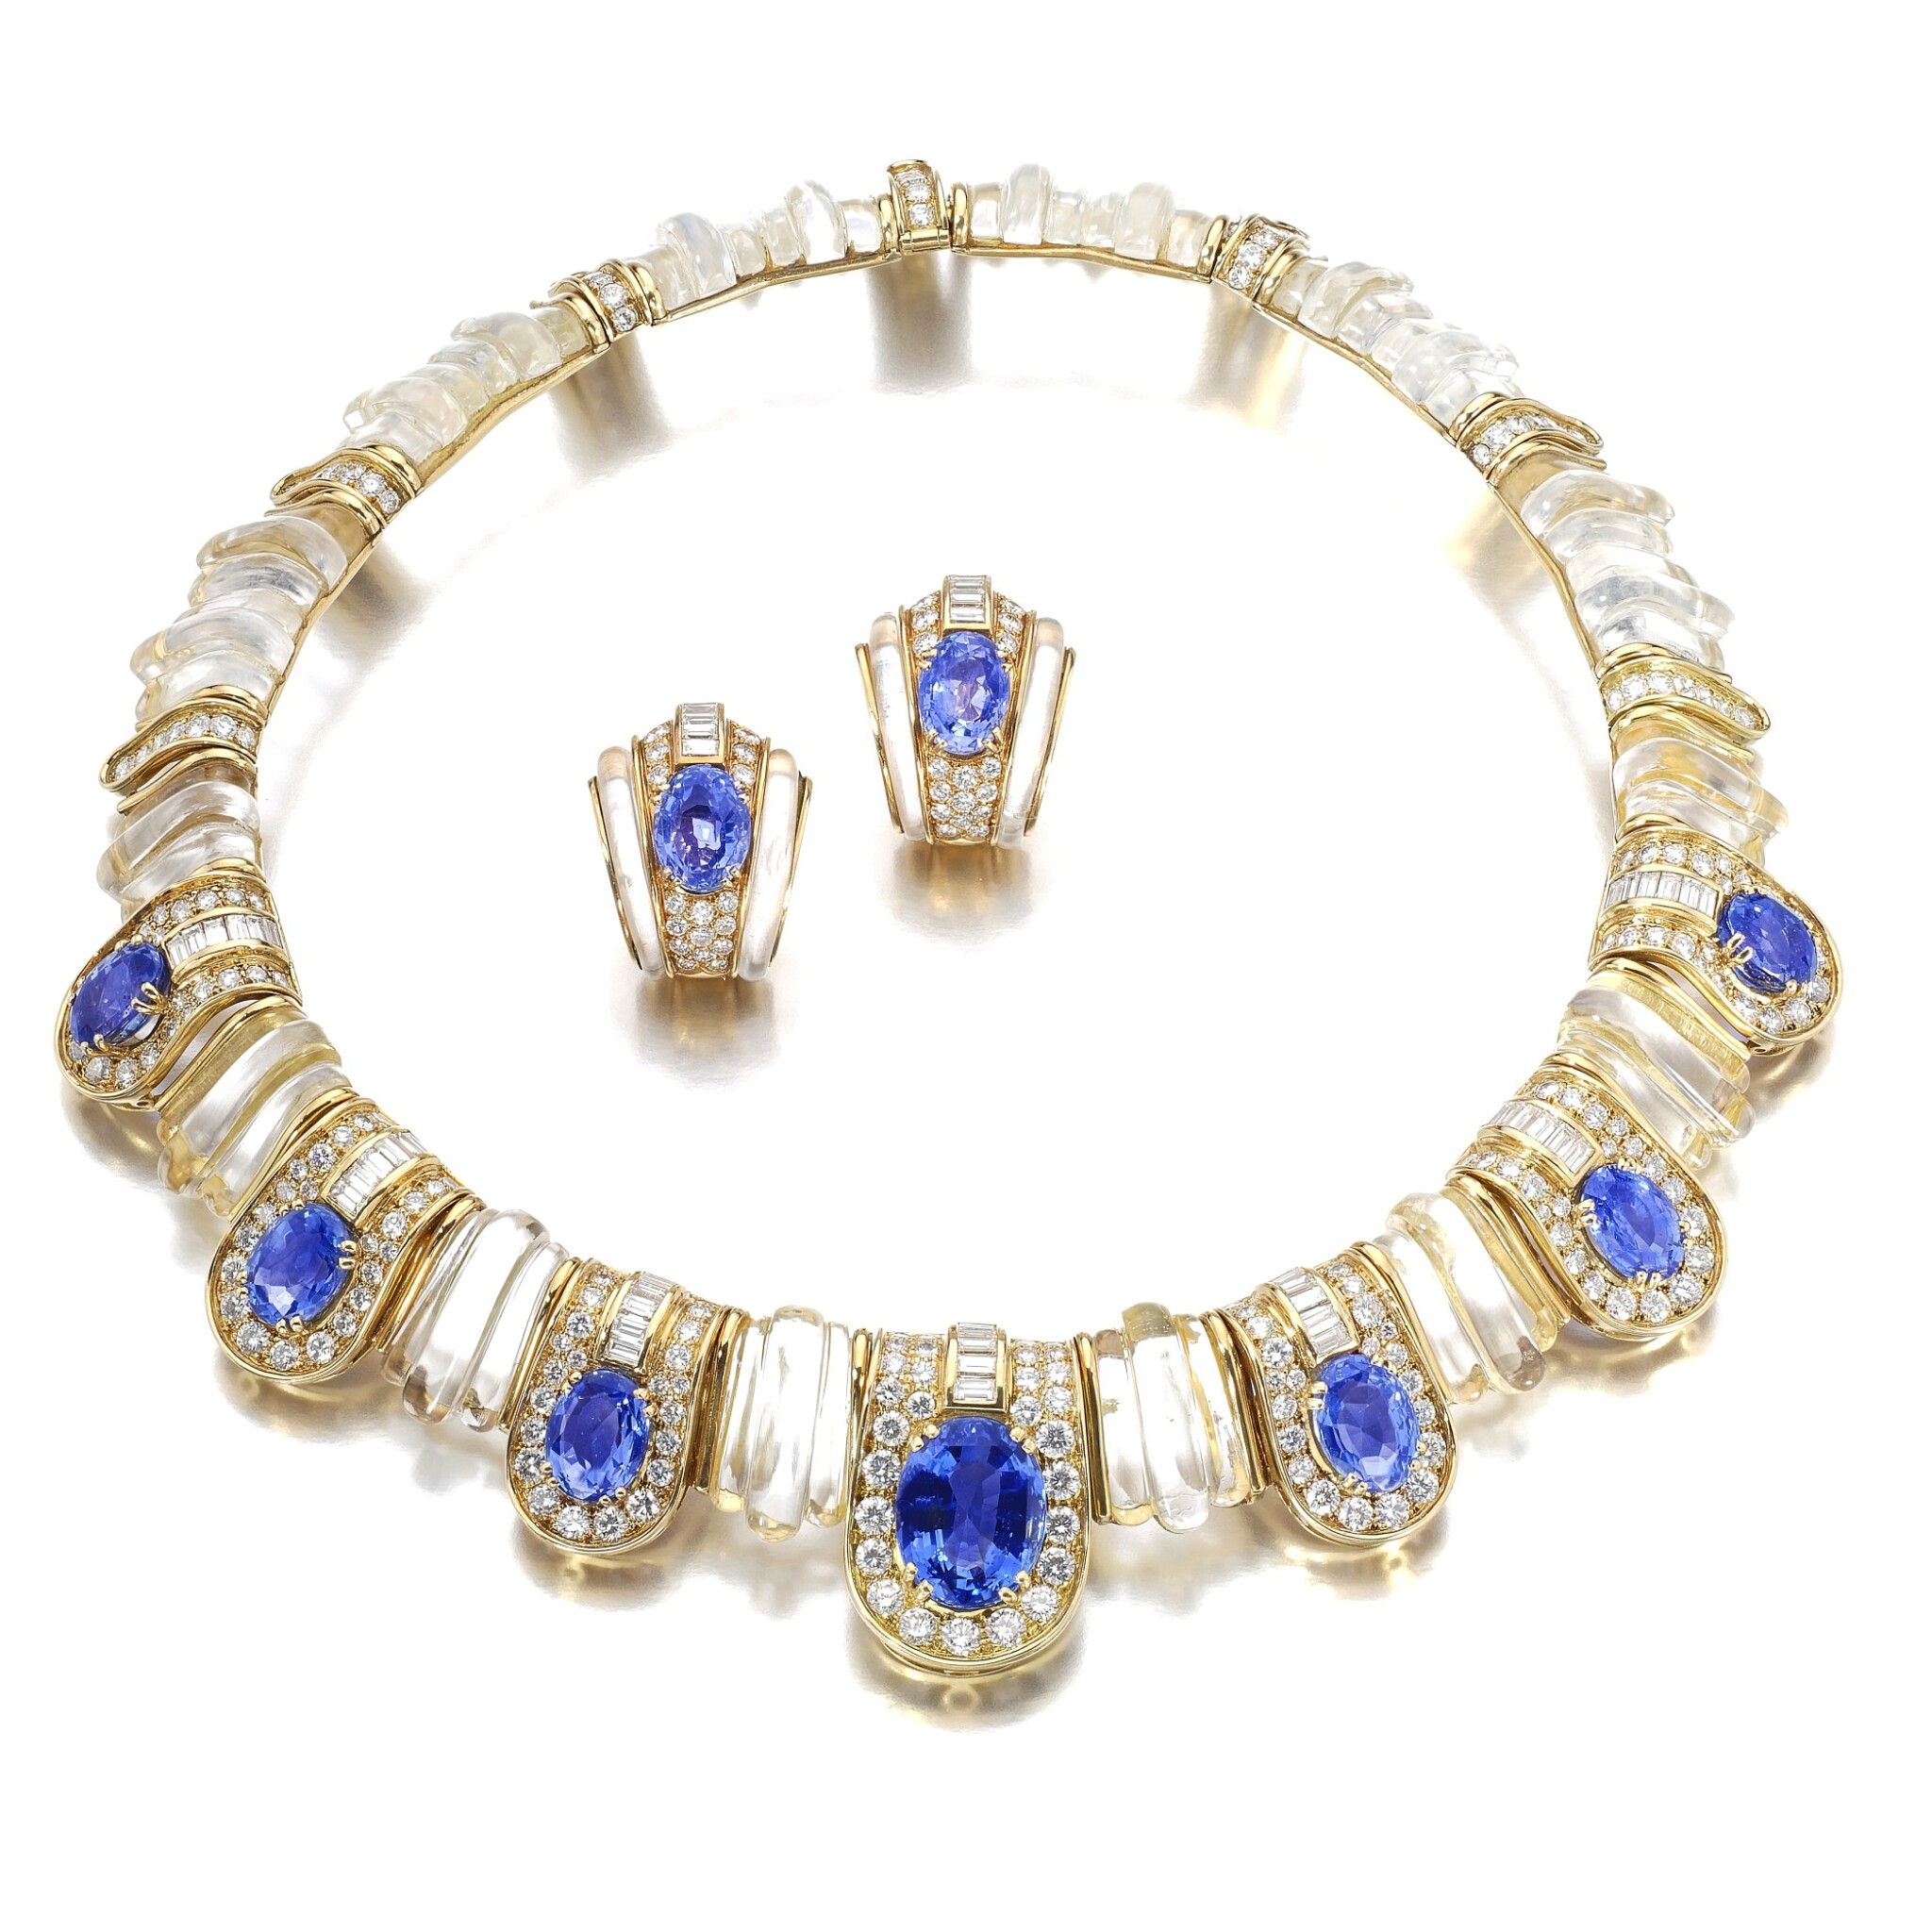 View full screen - View 1 of Lot 620. Boucheron | Rock crystal, sapphire and diamond demi-parure | 寶詩龍 | 白水晶配藍寶石及鑽石首飾套裝.